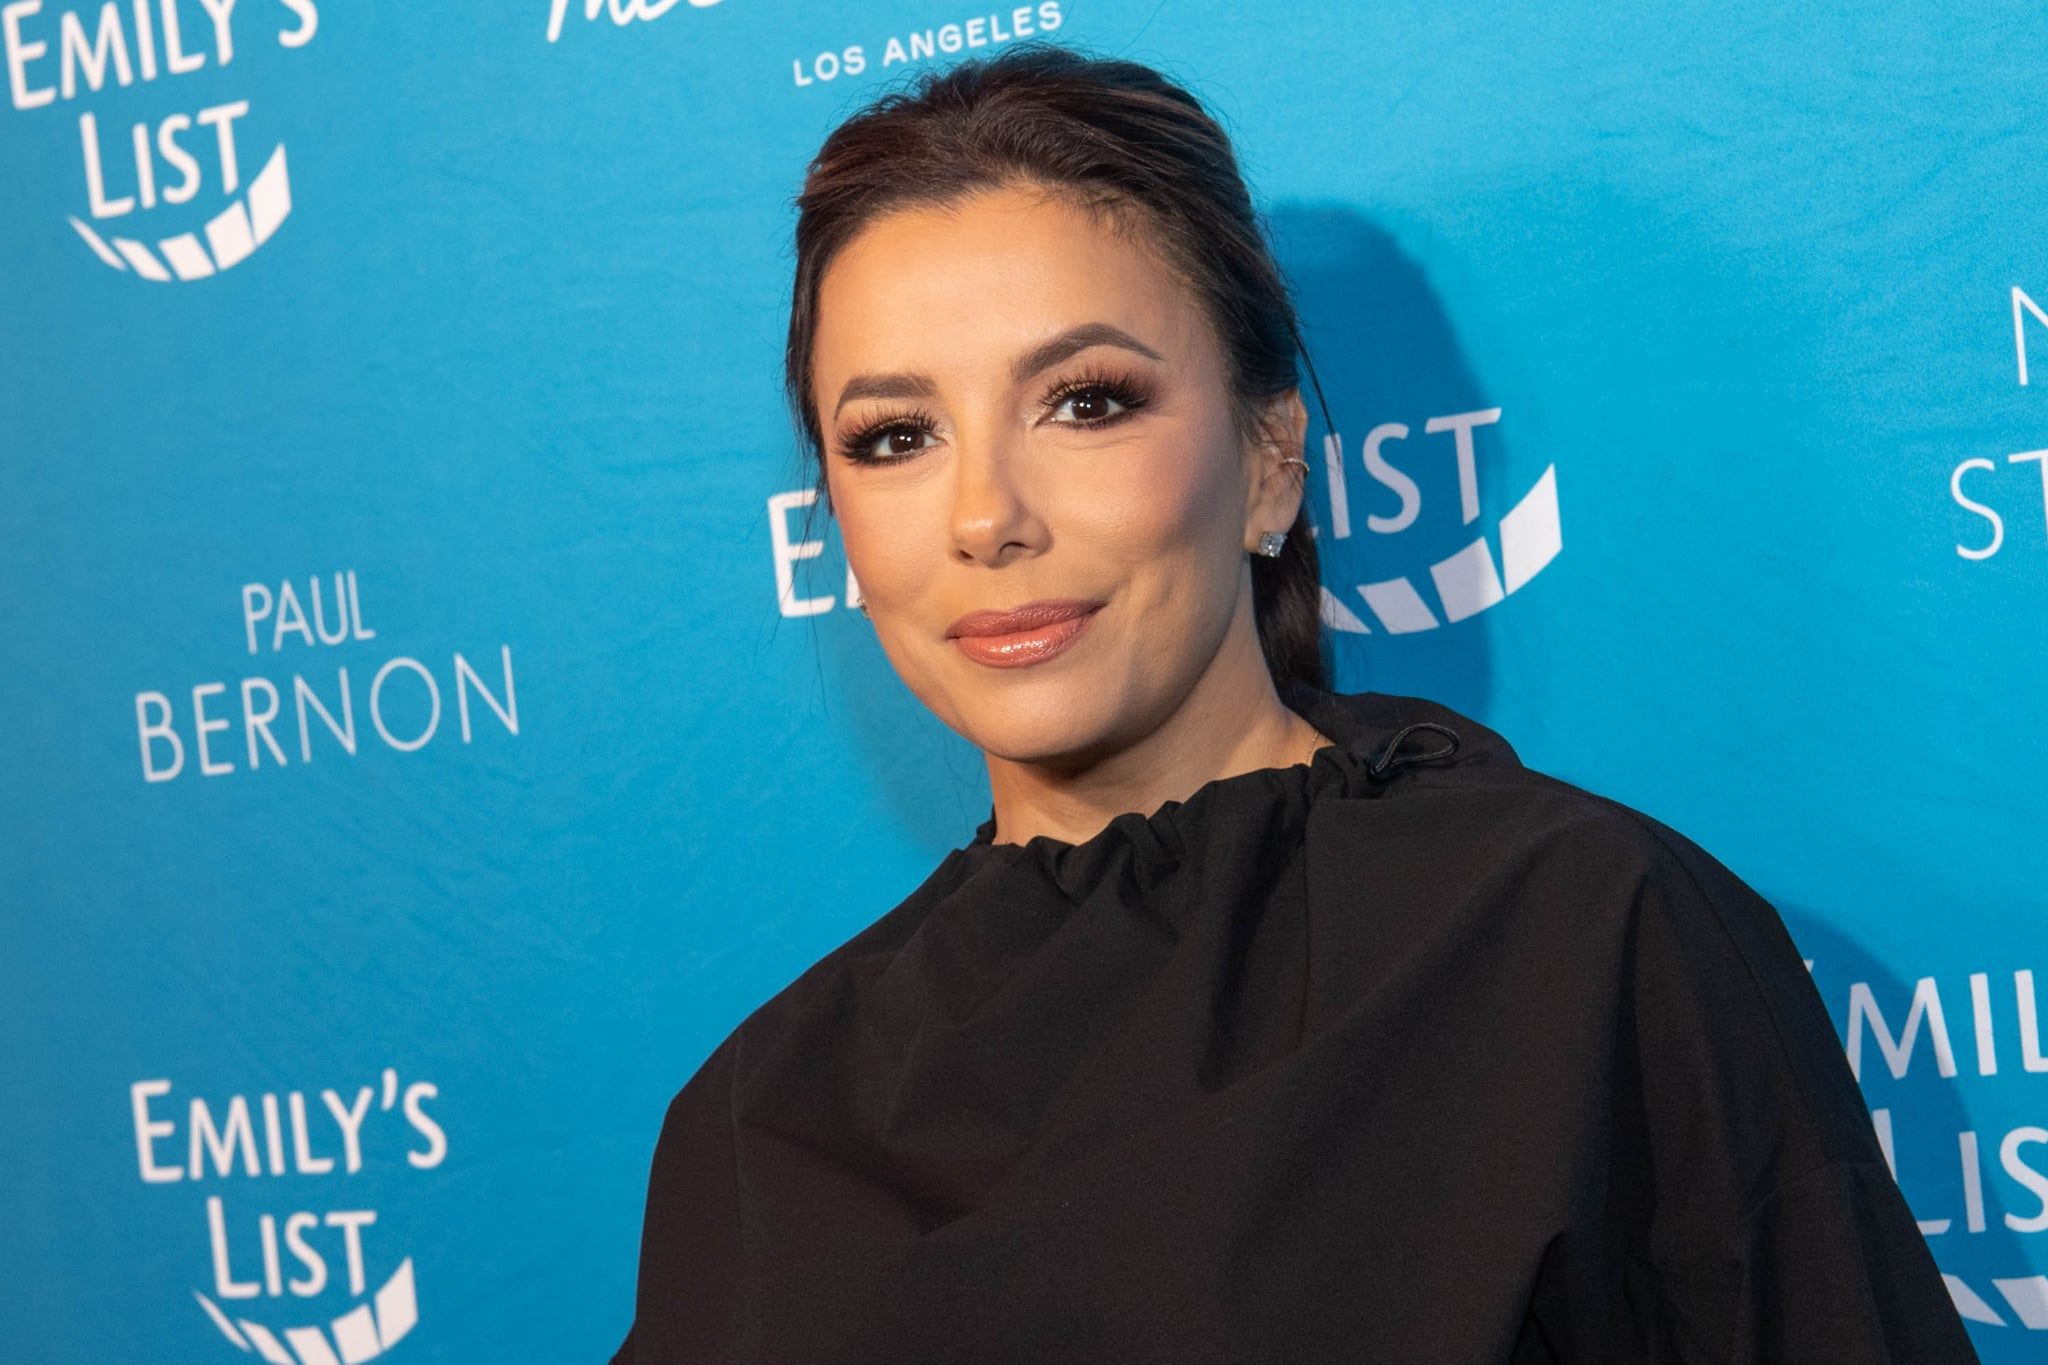 LOS ANGELES, CALIFORNIA - FEBRUARY 04: Eva Longoria arrives at Emily's List 3rd annual pre-oscars event at Four Seasons Hotel Los Angeles at Beverly Hills on February 04, 2020 in Los Angeles, California. (Photo by Emma McIntyre/WireImage)